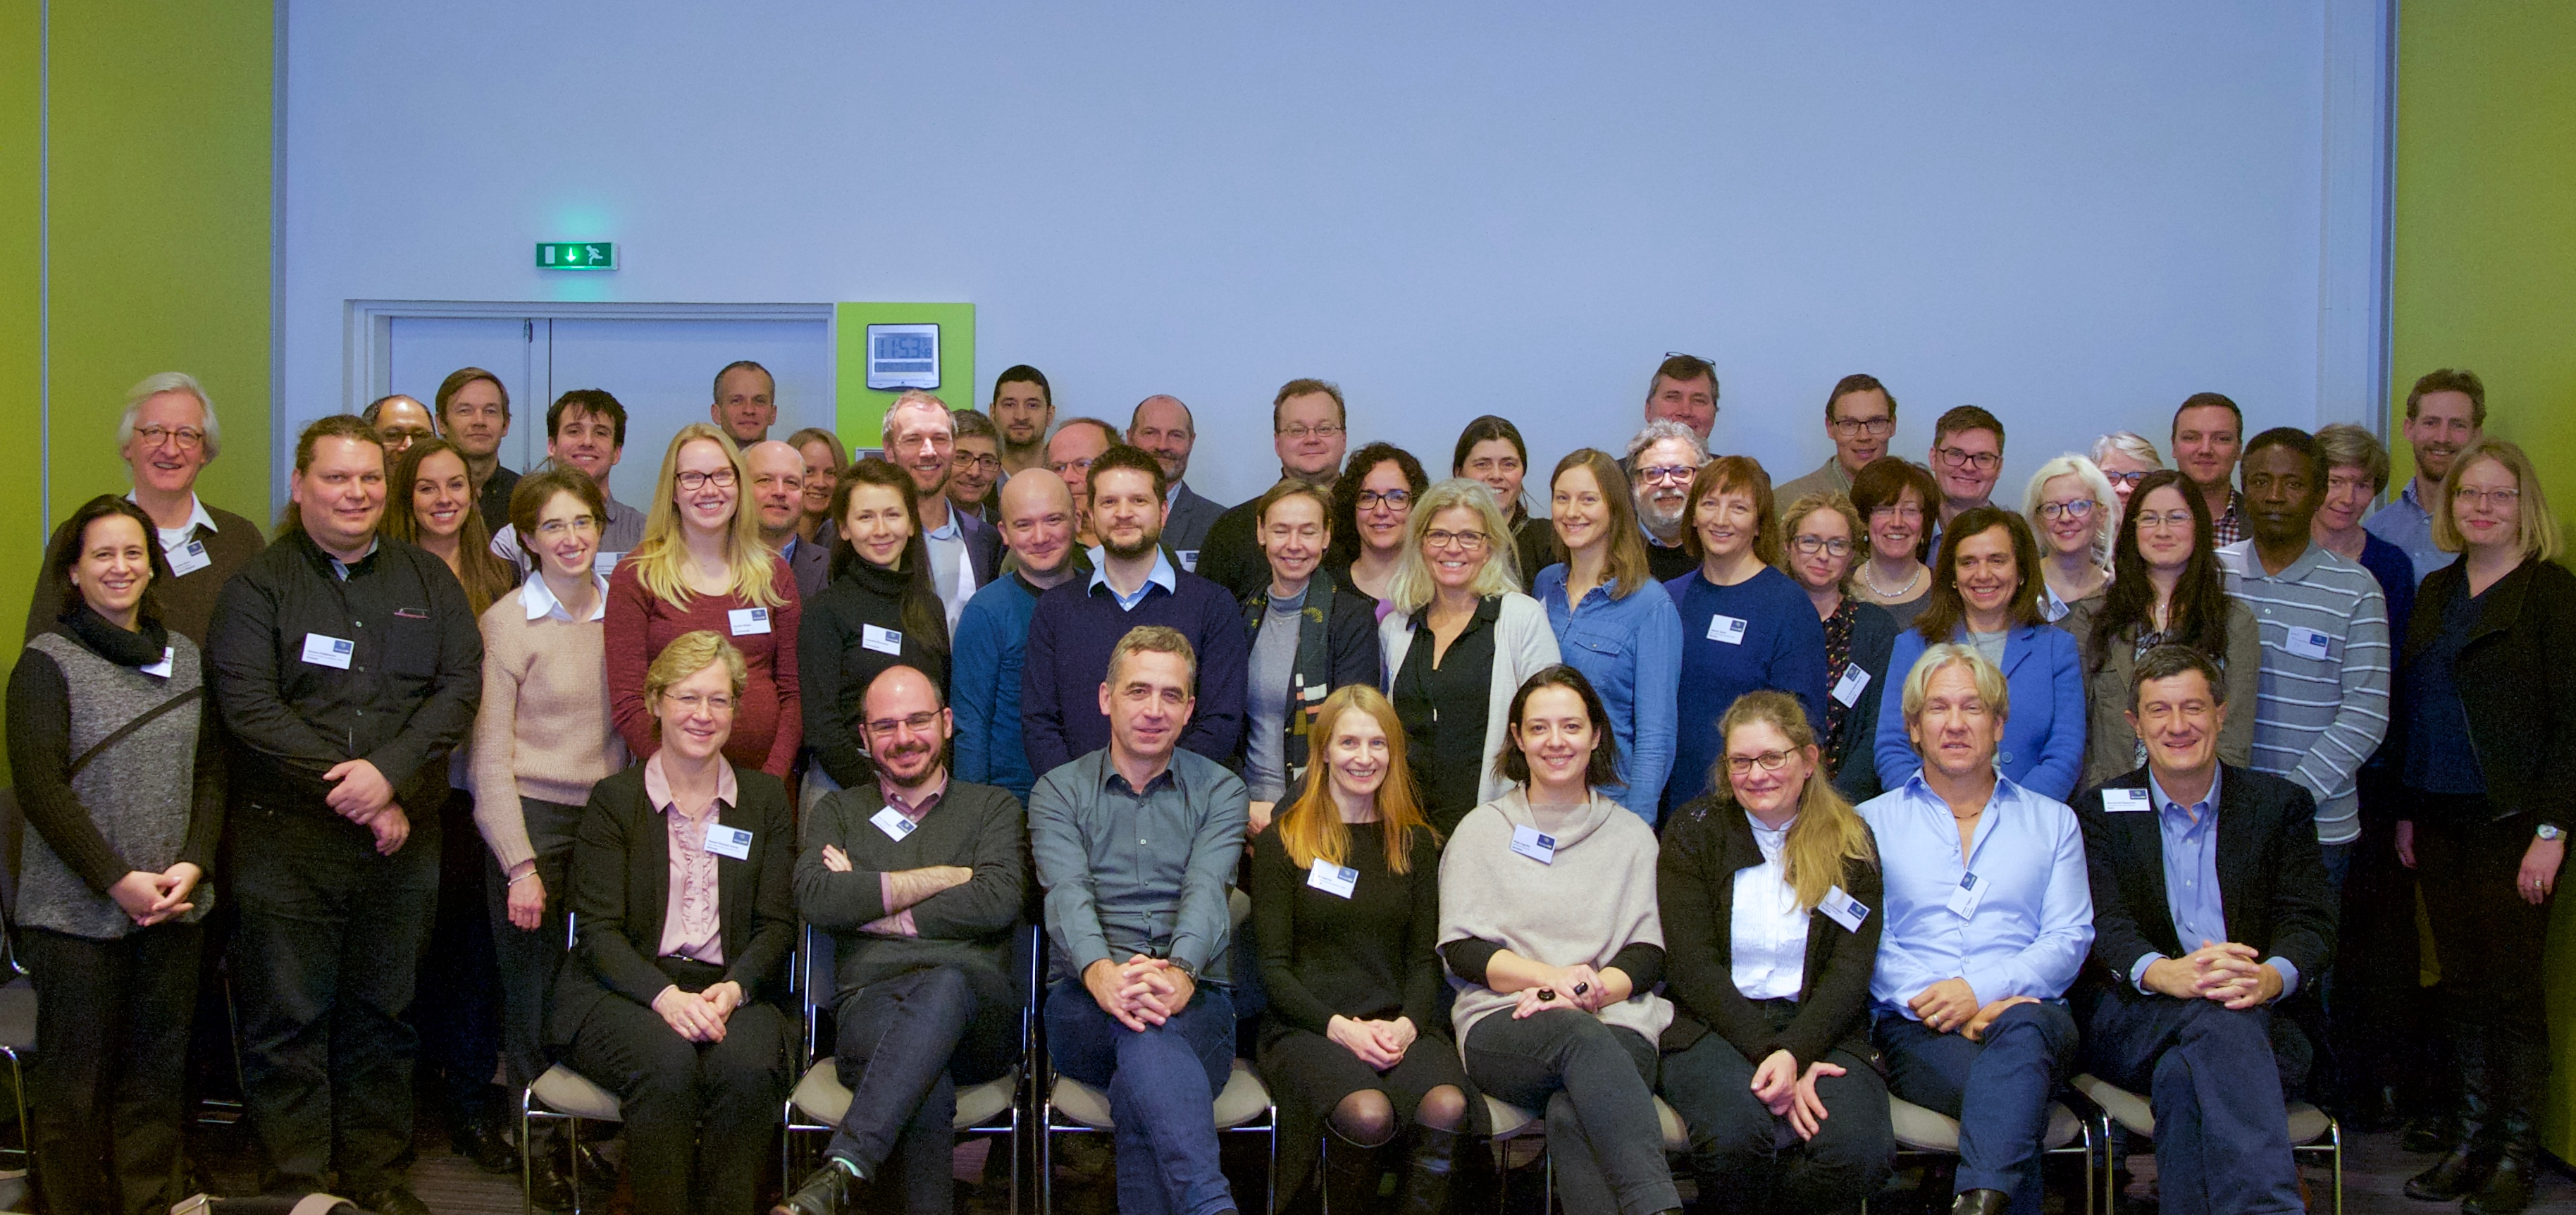 Group photo of all multipleMS partners teams at the Paris kickoff meeting